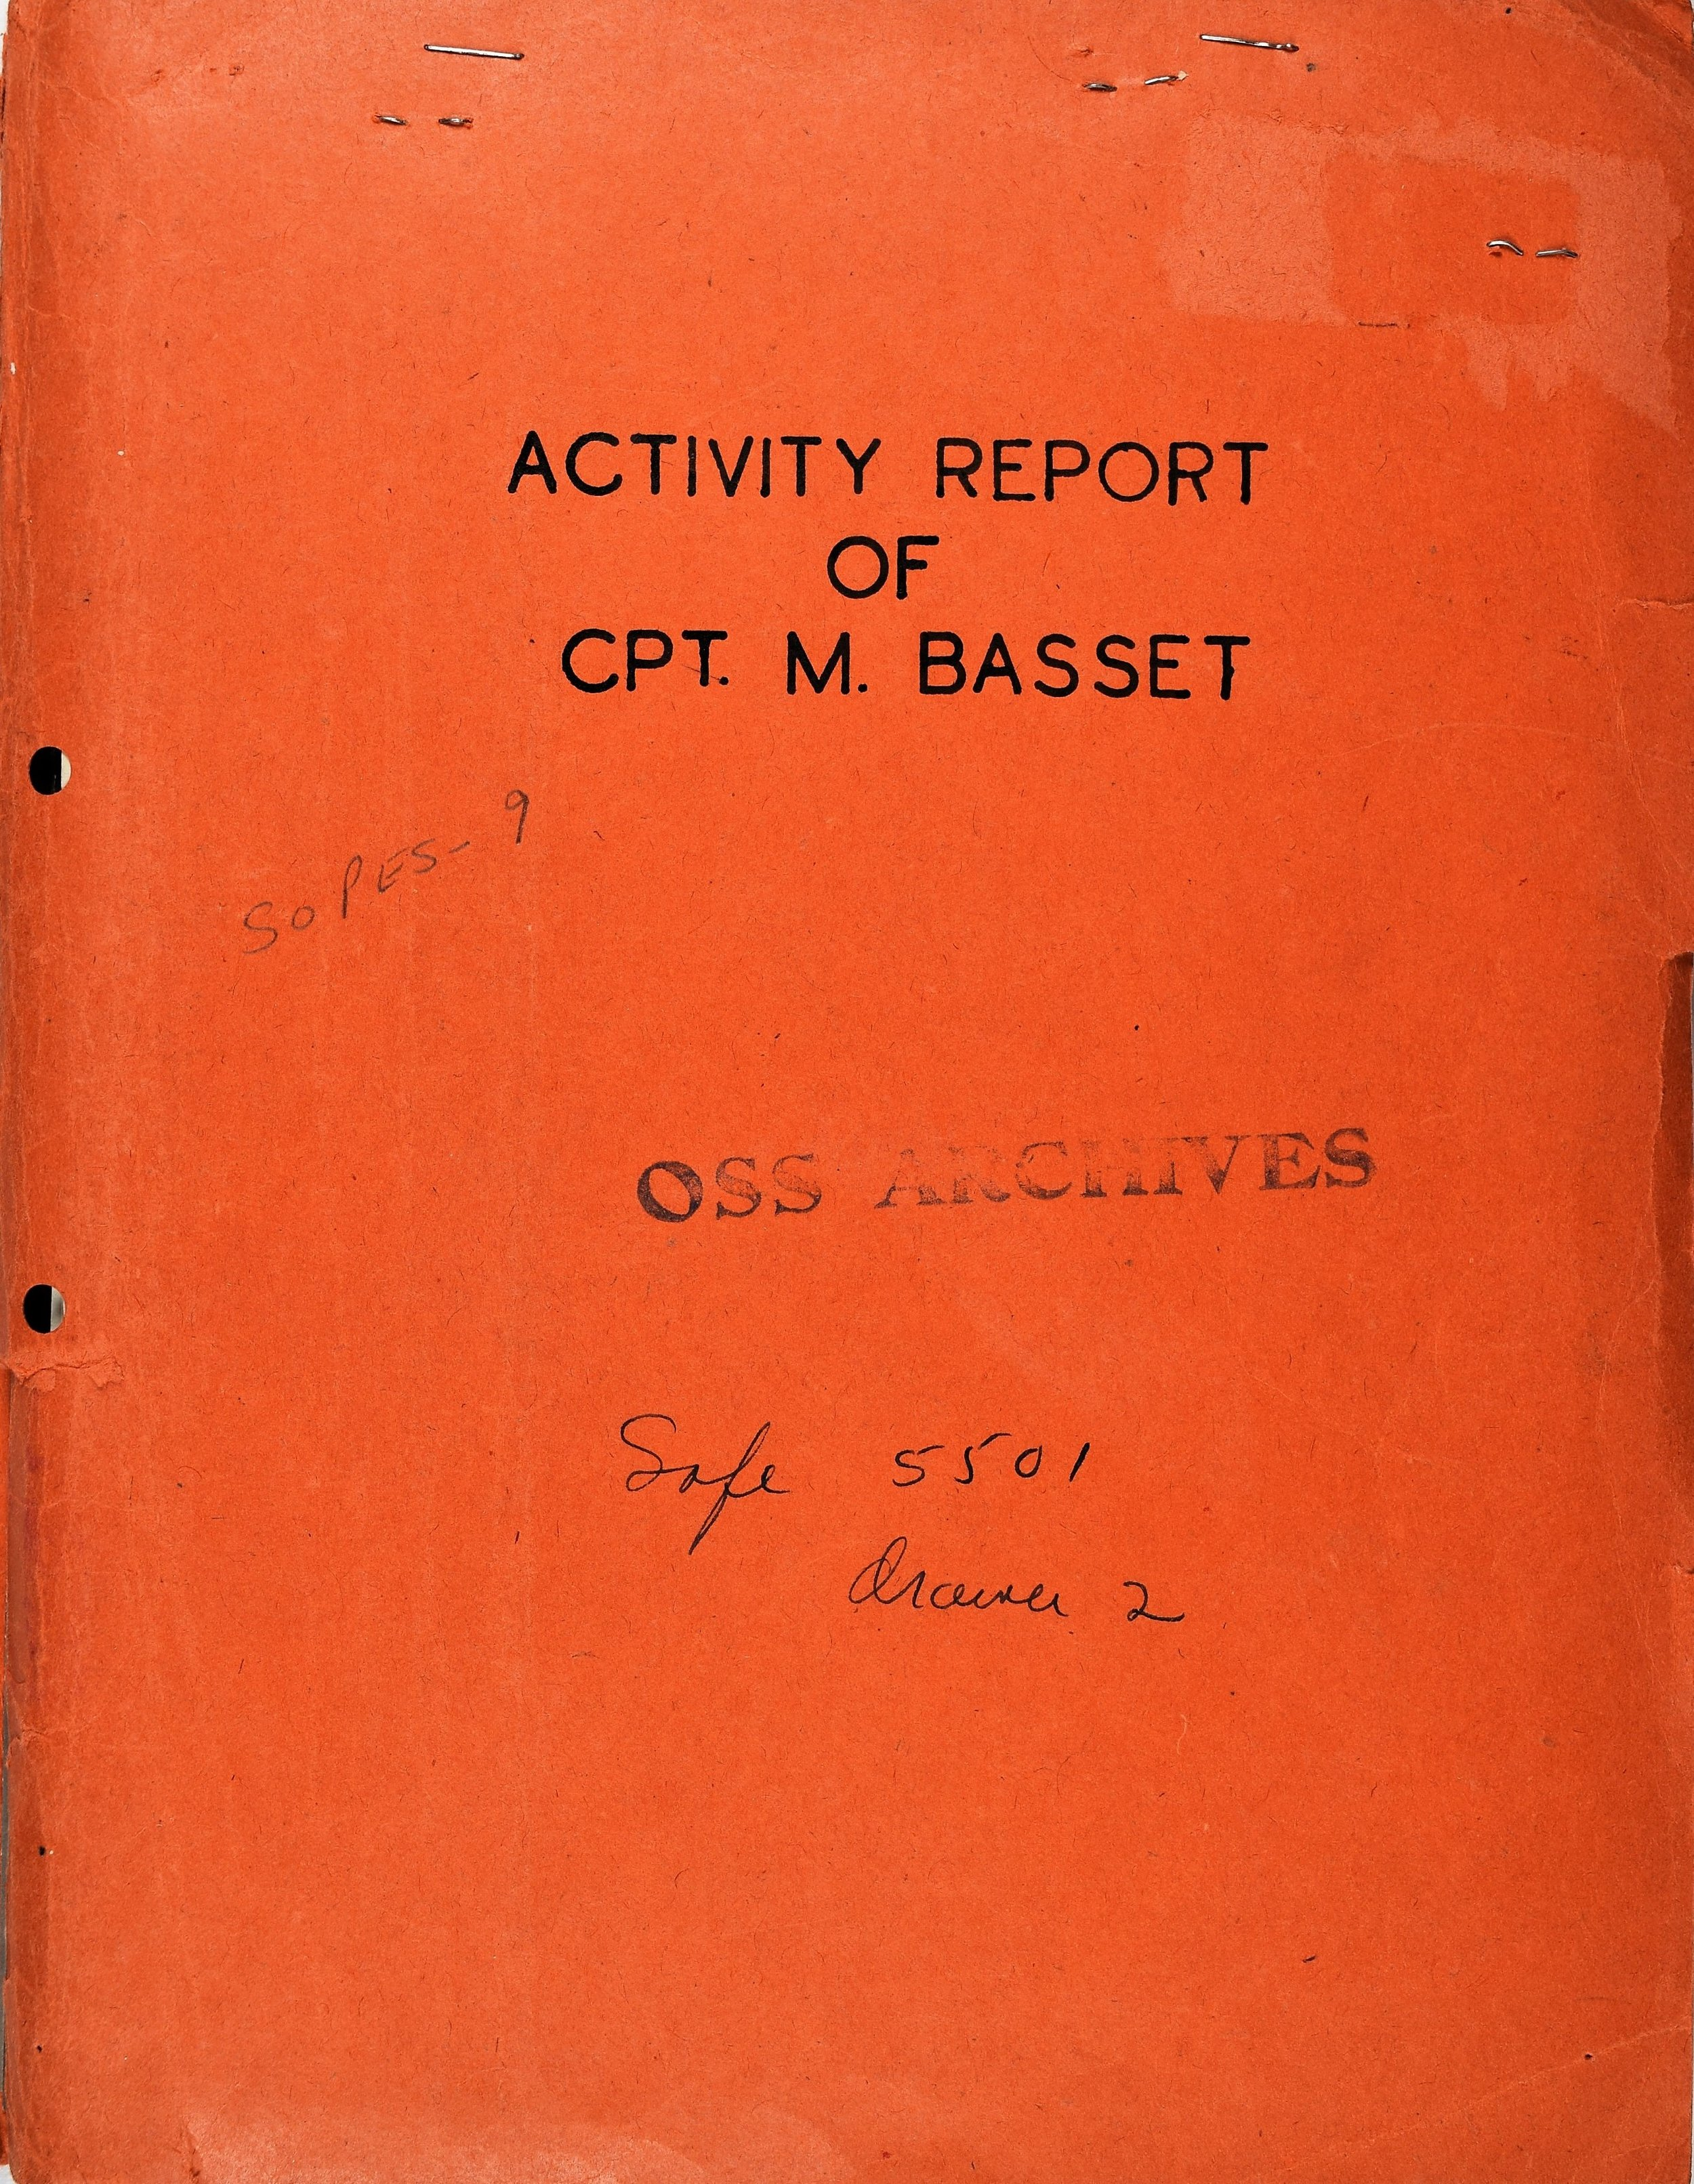 Post-operative debrief of OSS Captain Basset's clandestine mission in the French Alps Maritimes in 1944.